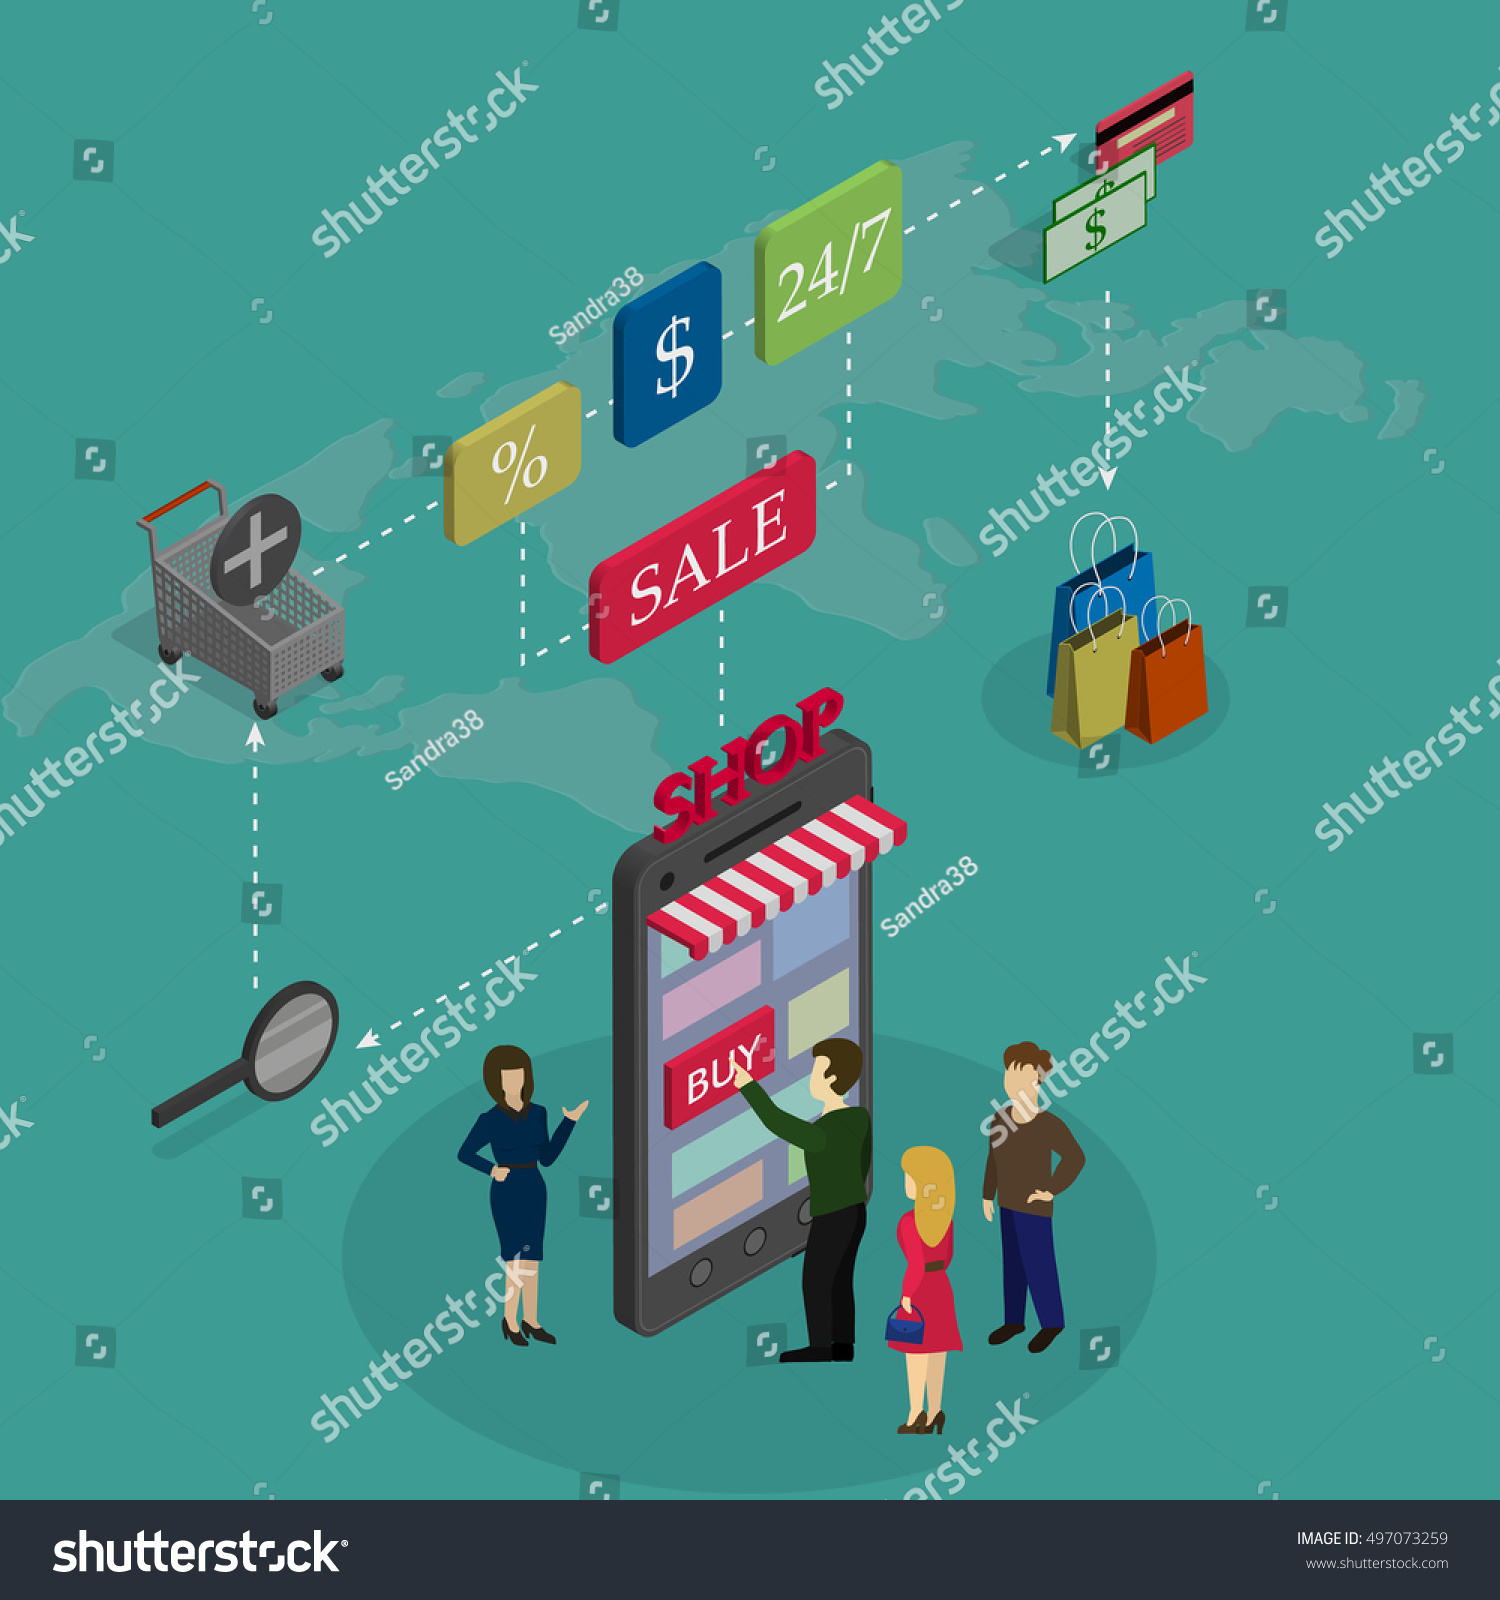 Concept online shopping people buy phone vectores en stock 497073259 the concept of online shopping people buy the phone on a world map background and gumiabroncs Gallery